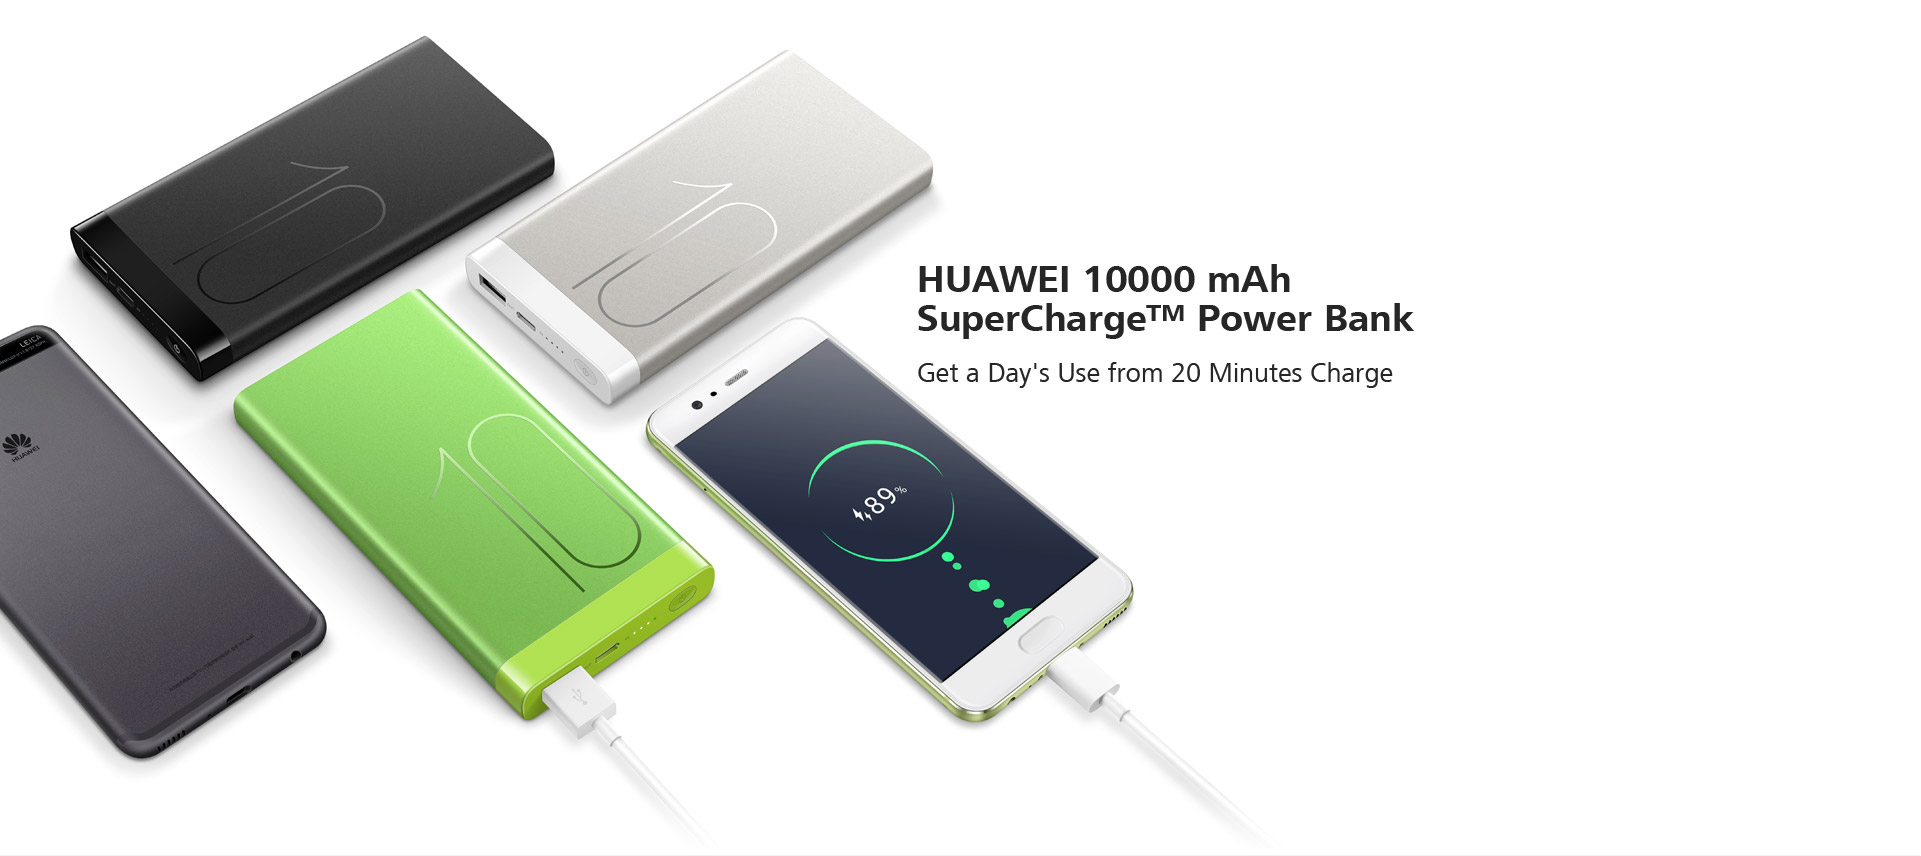 HUAWEI 10000 mAh SuperCharge™ Power Bank